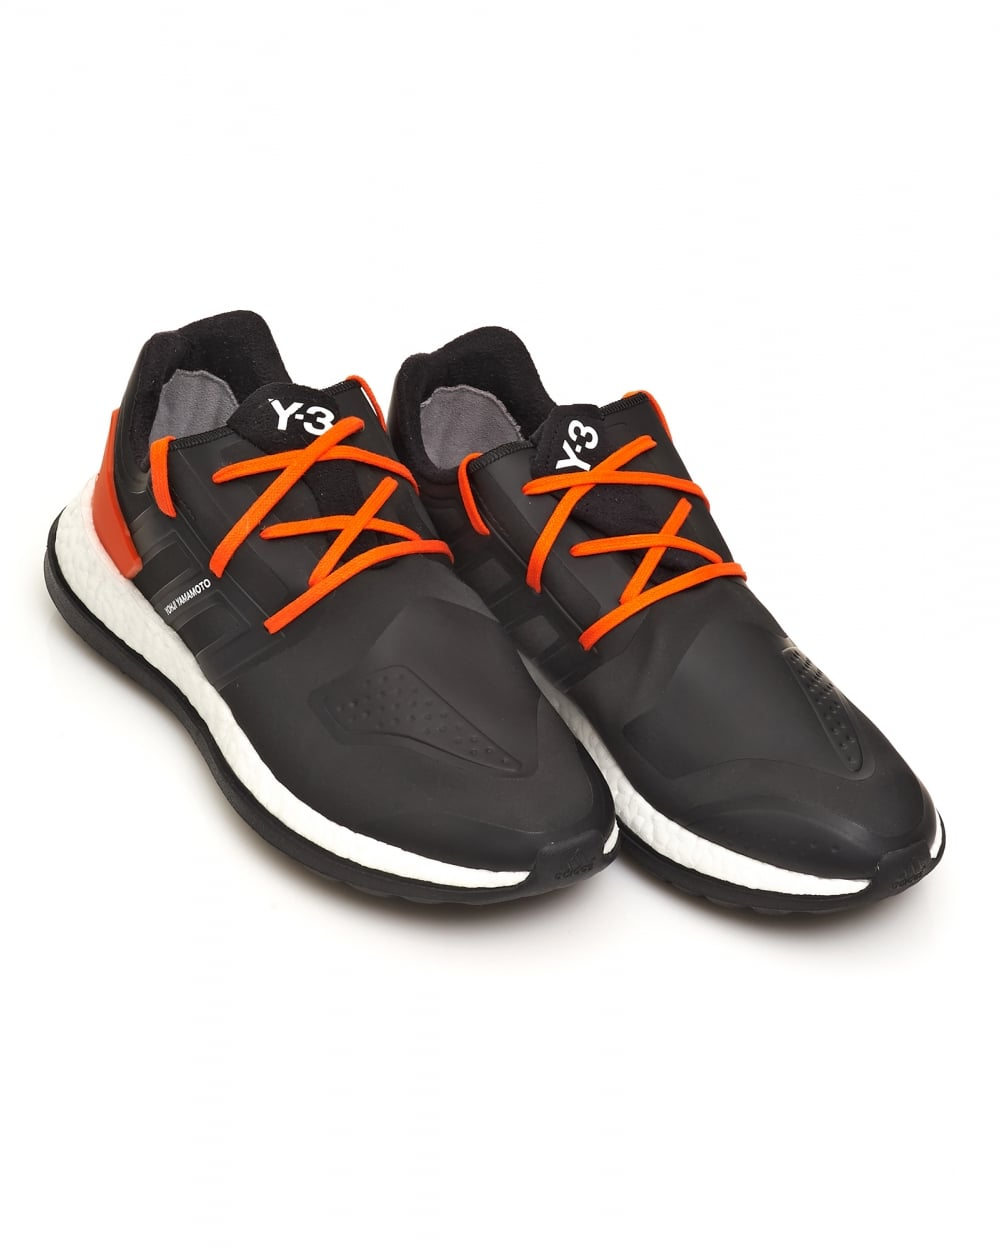 results for black and orange trainers Save black and orange trainers to get e-mail alerts and updates on your eBay Feed. Unfollow black and orange trainers to stop getting updates on your eBay feed.